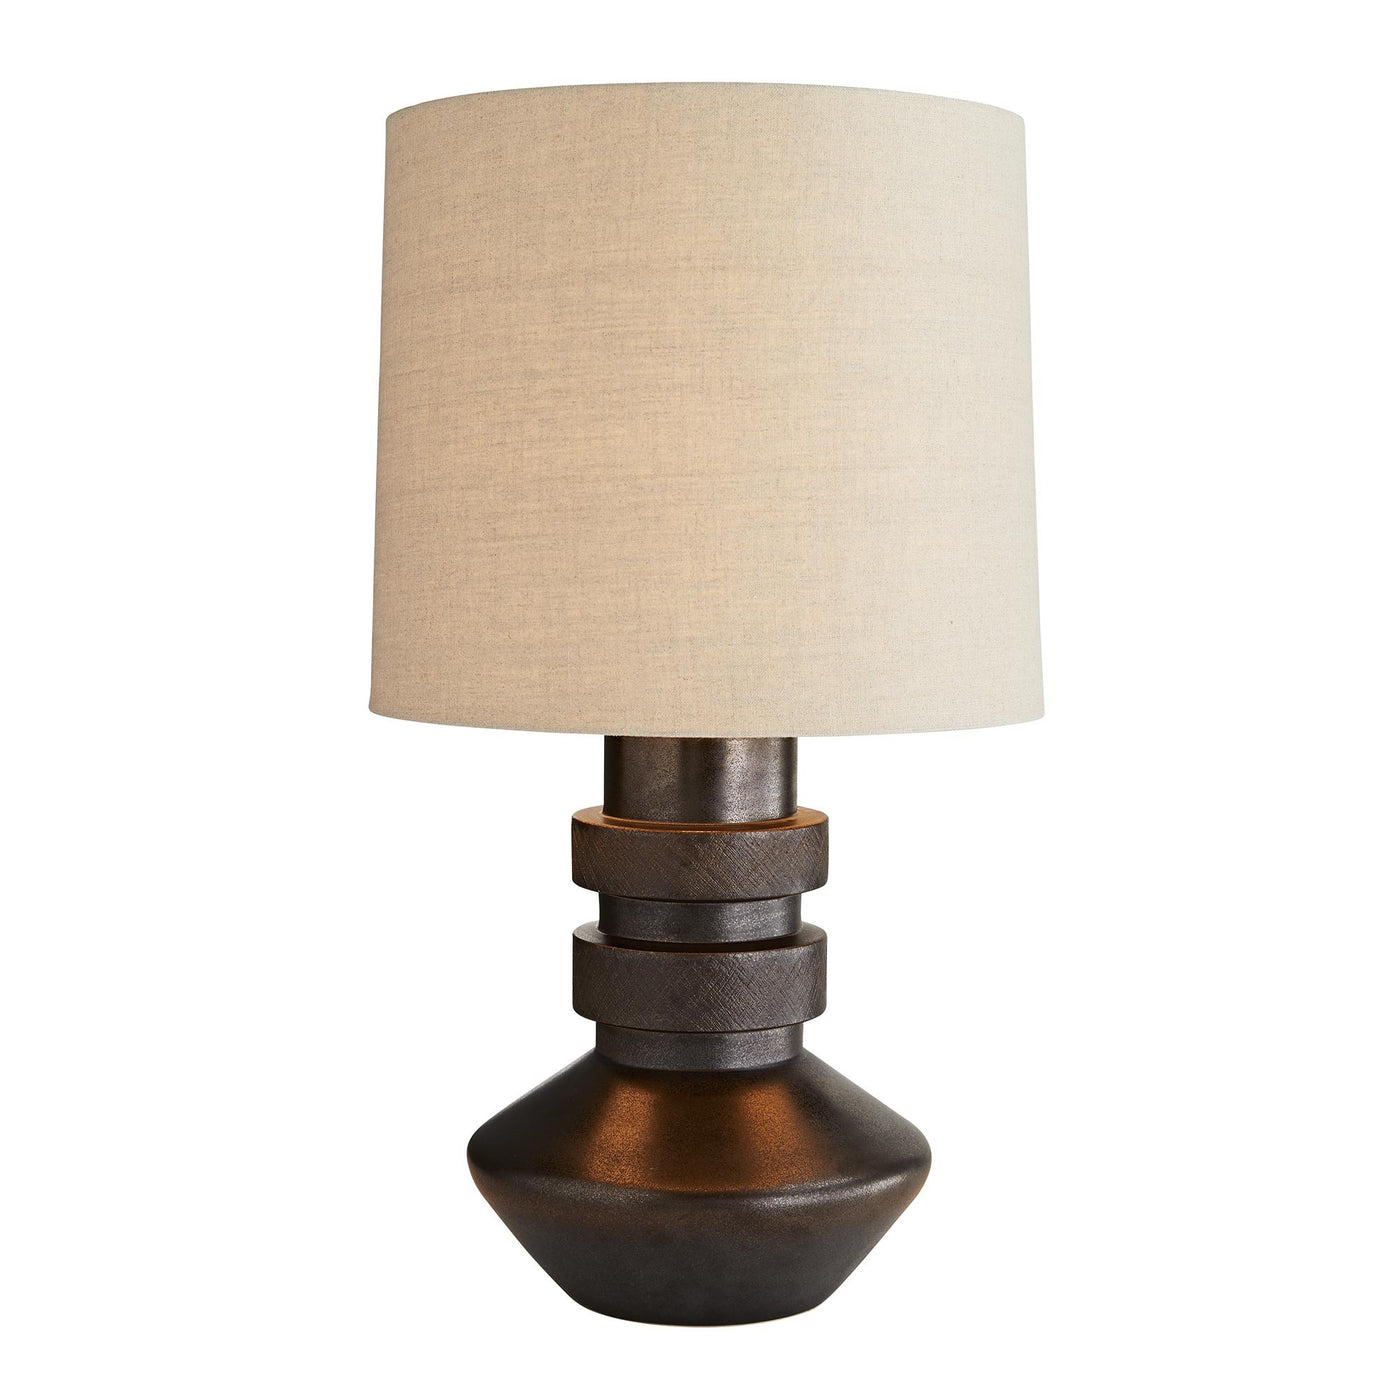 arteriors Spencer lamp light on